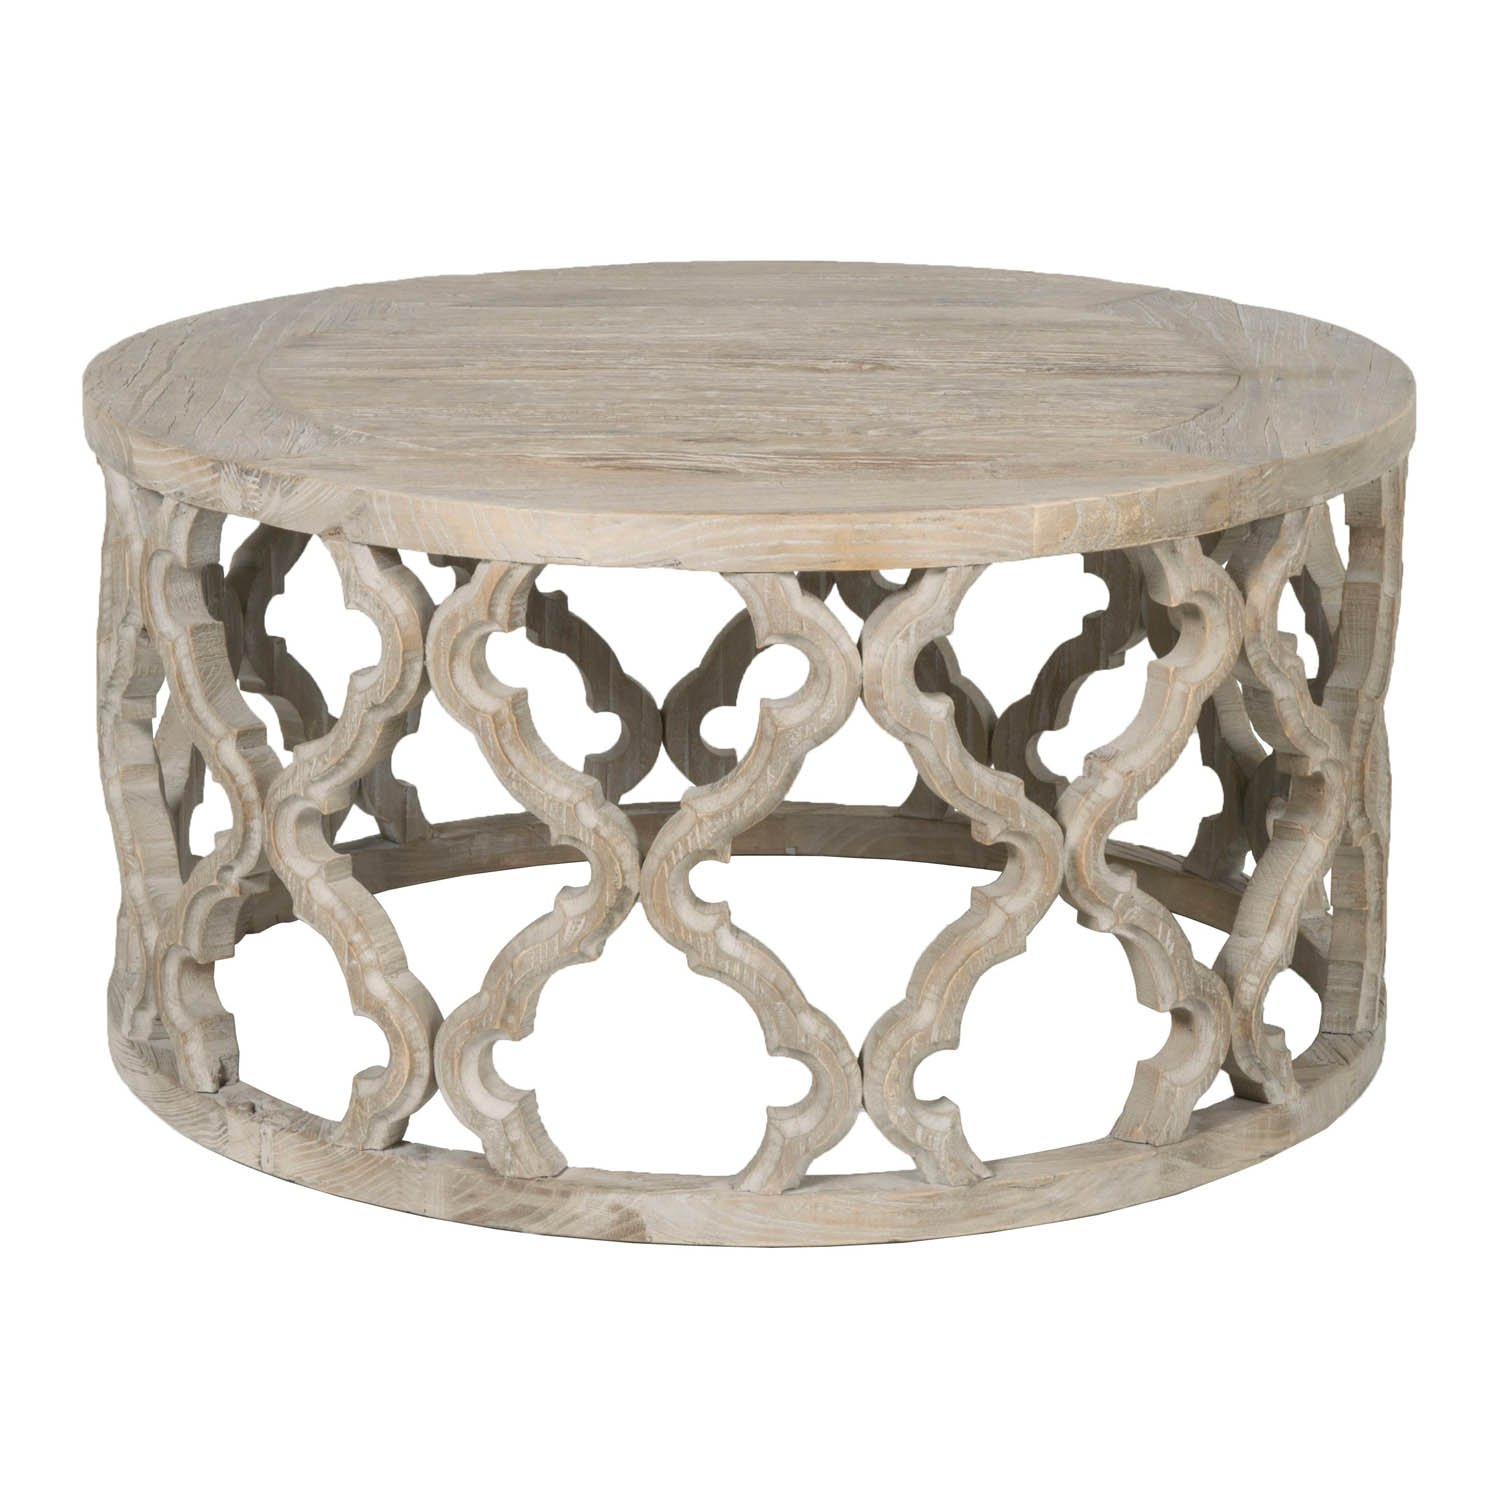 benzara round wooden coffee table quatrefoil wood accent design brown one kitchen dining sets tall narrow entryway uttermost martel console mirrored pedestal occasional tables